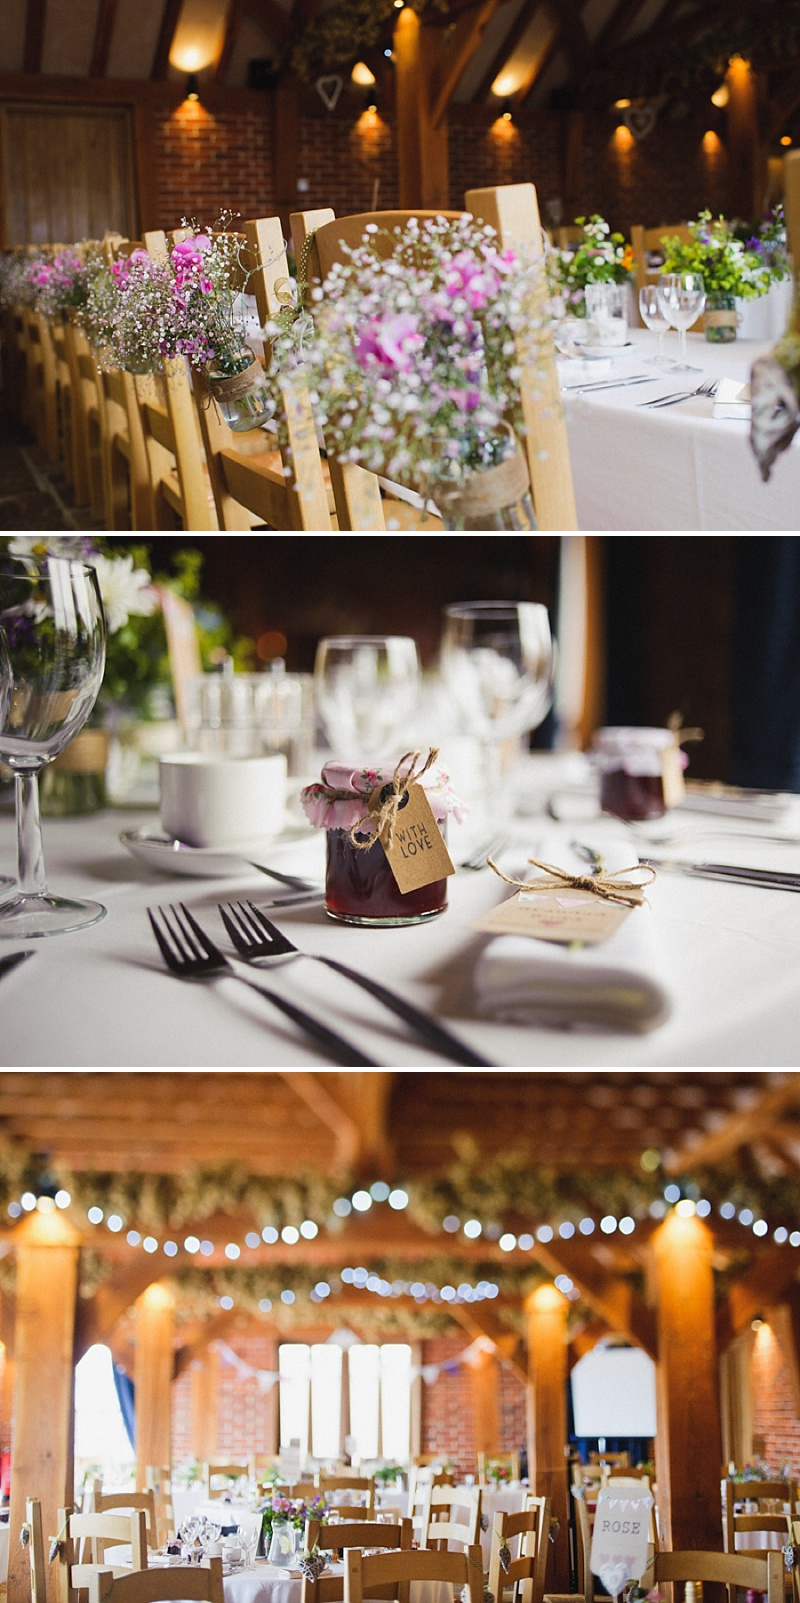 Vintage Inspired Barn Wedding At The Ferry House Inn Kent, Bride In Balta By Pronovias, Images By Hannah-May_0007